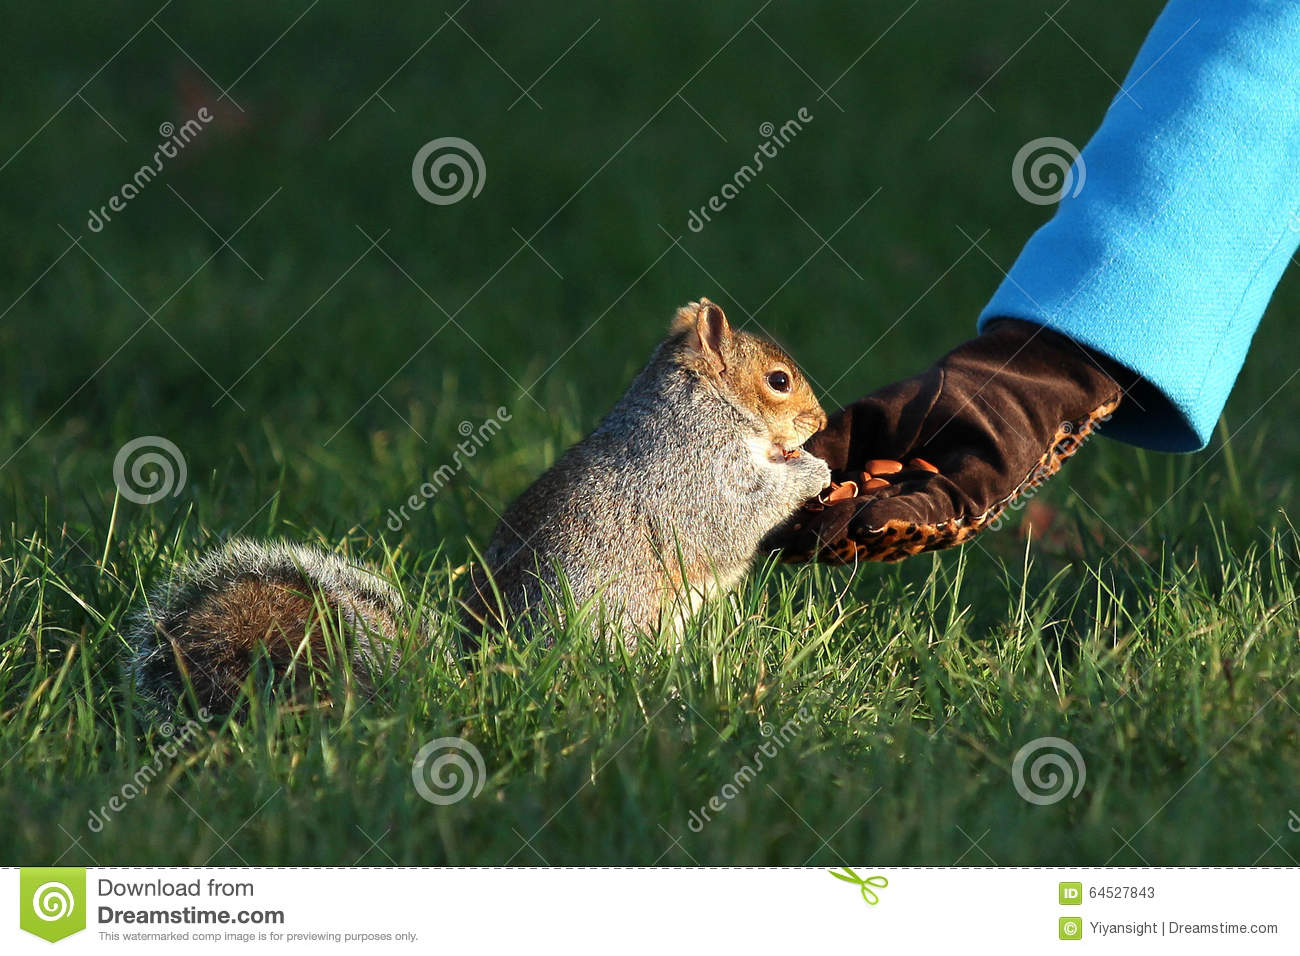 Providing food for the squirrels in winter